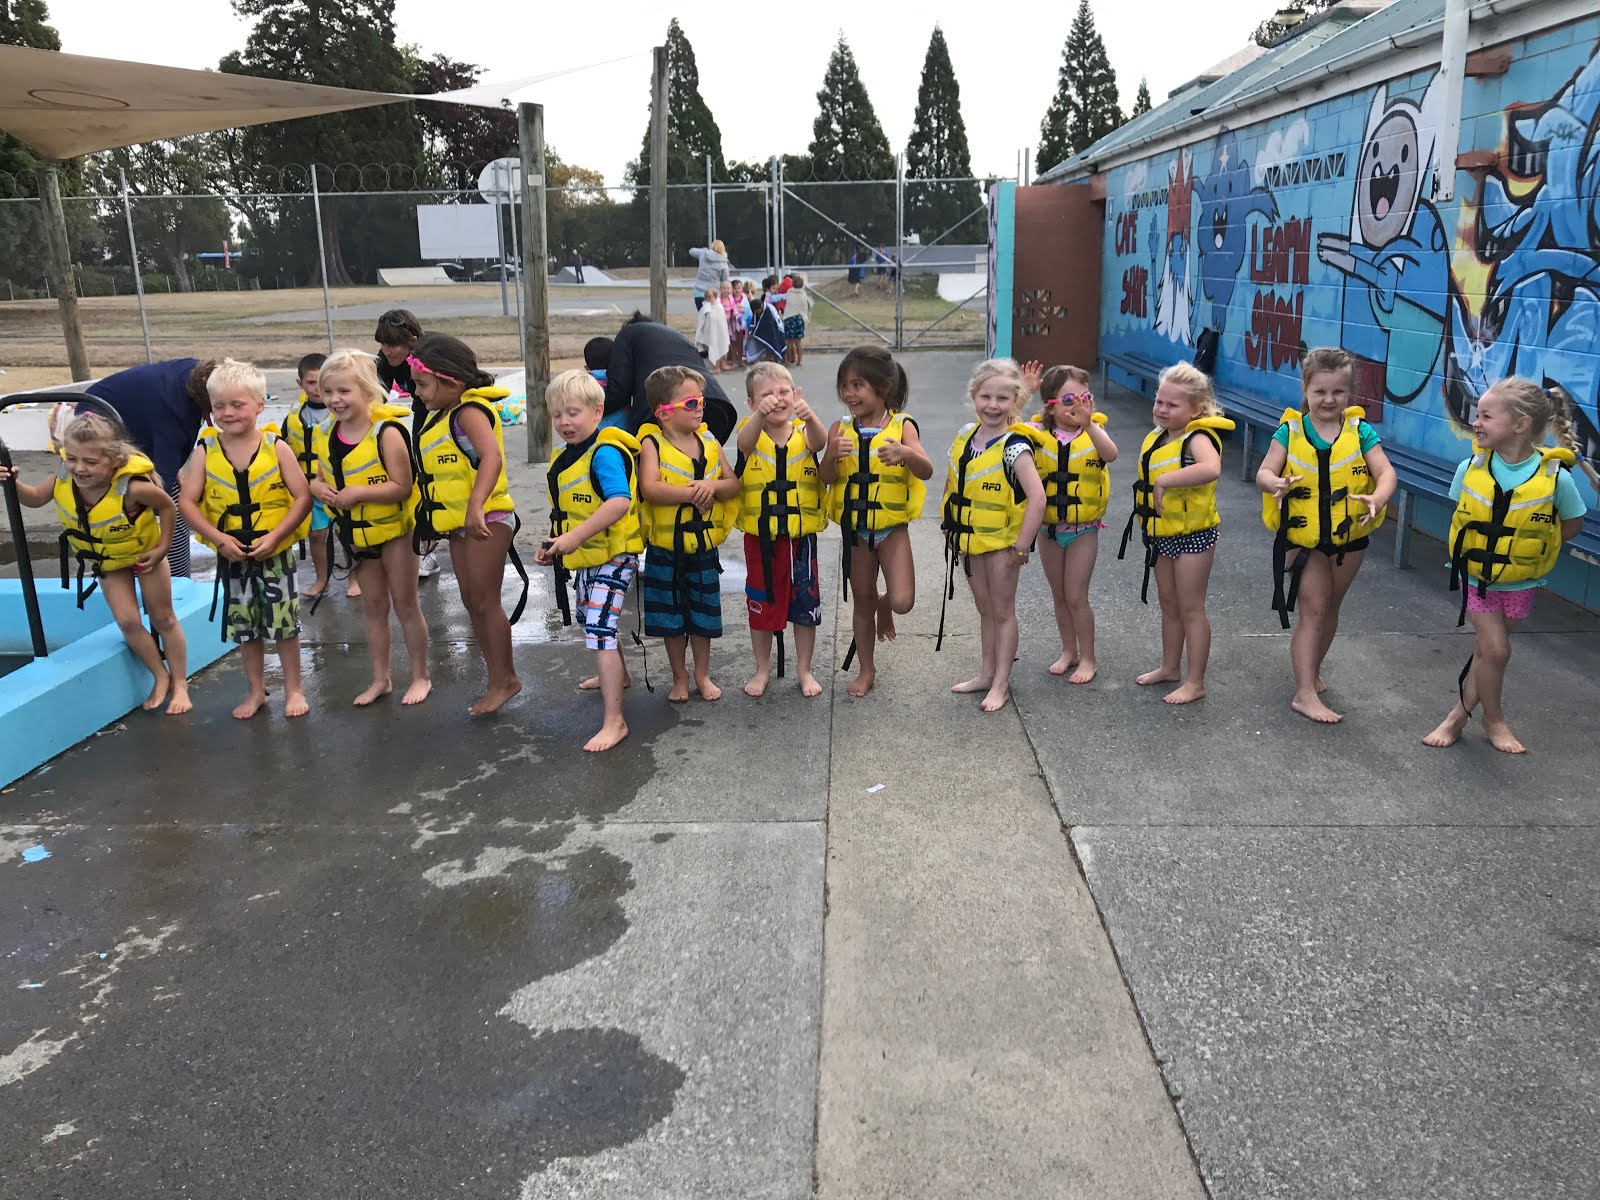 Lifejacket fun!